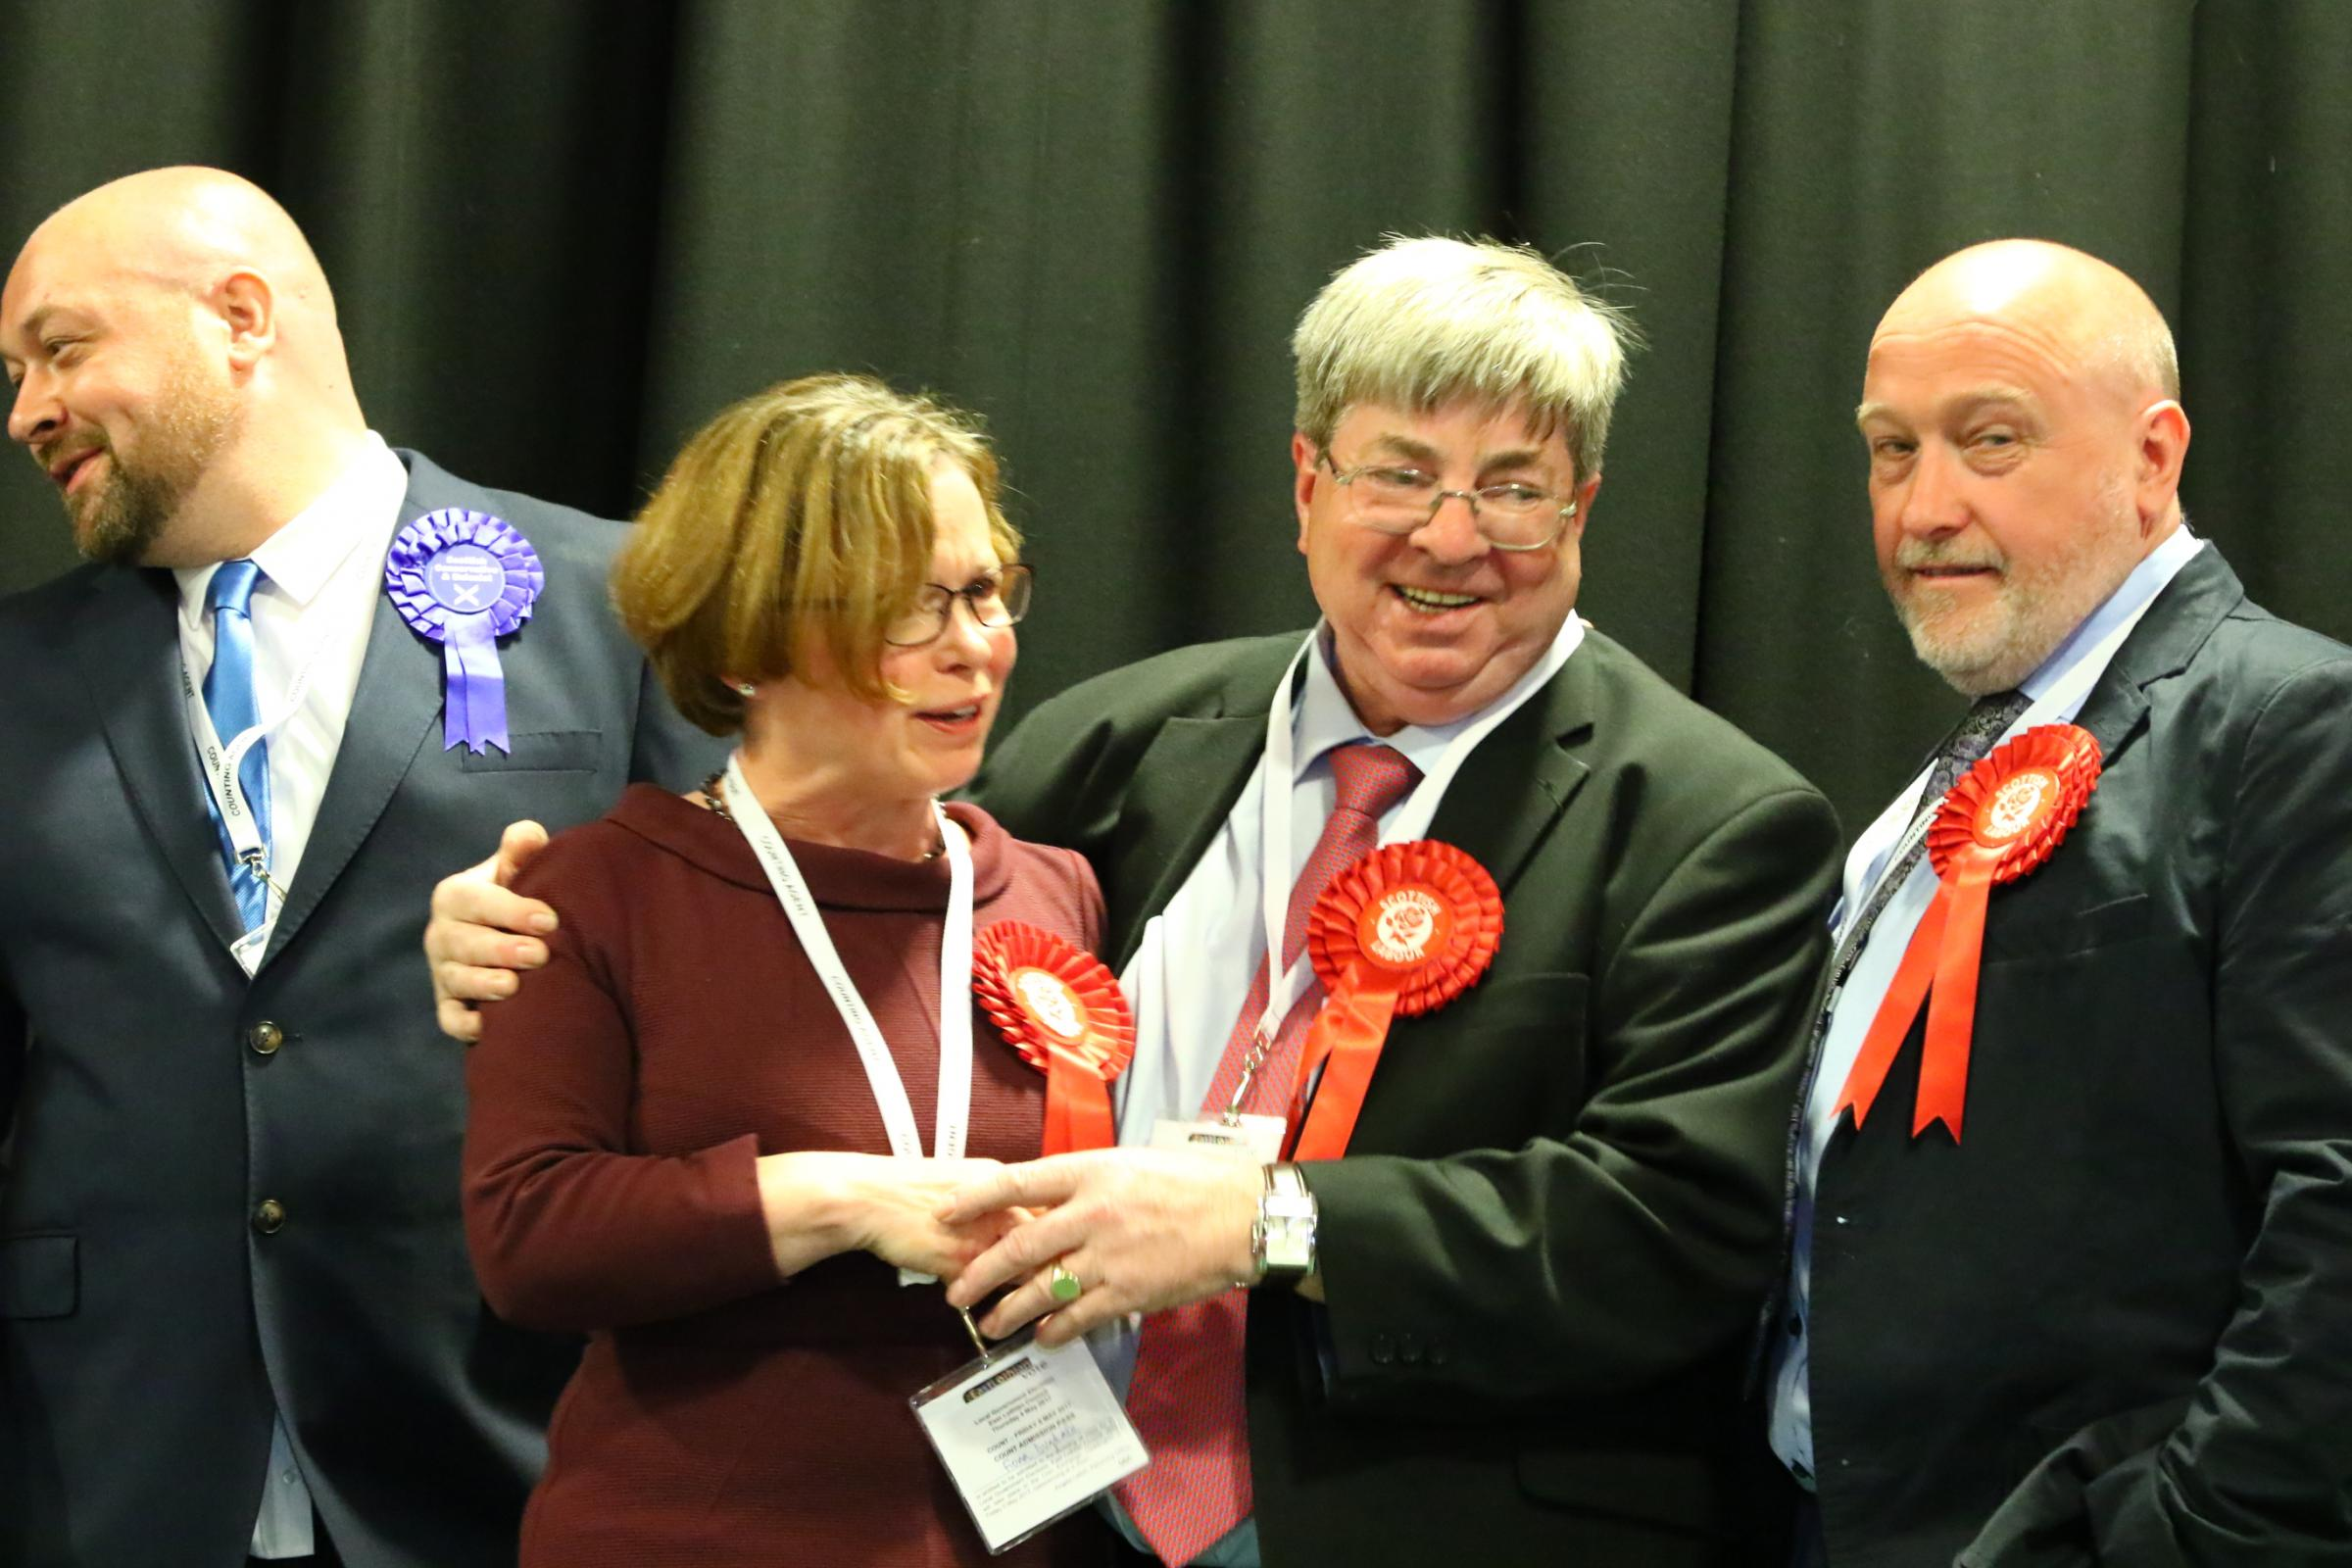 New Labour councillor Fiona Dugdale is congratulated by her party colleague Jim Gillies after her election is announced at last Friday's count in Haddington Corn Exchange